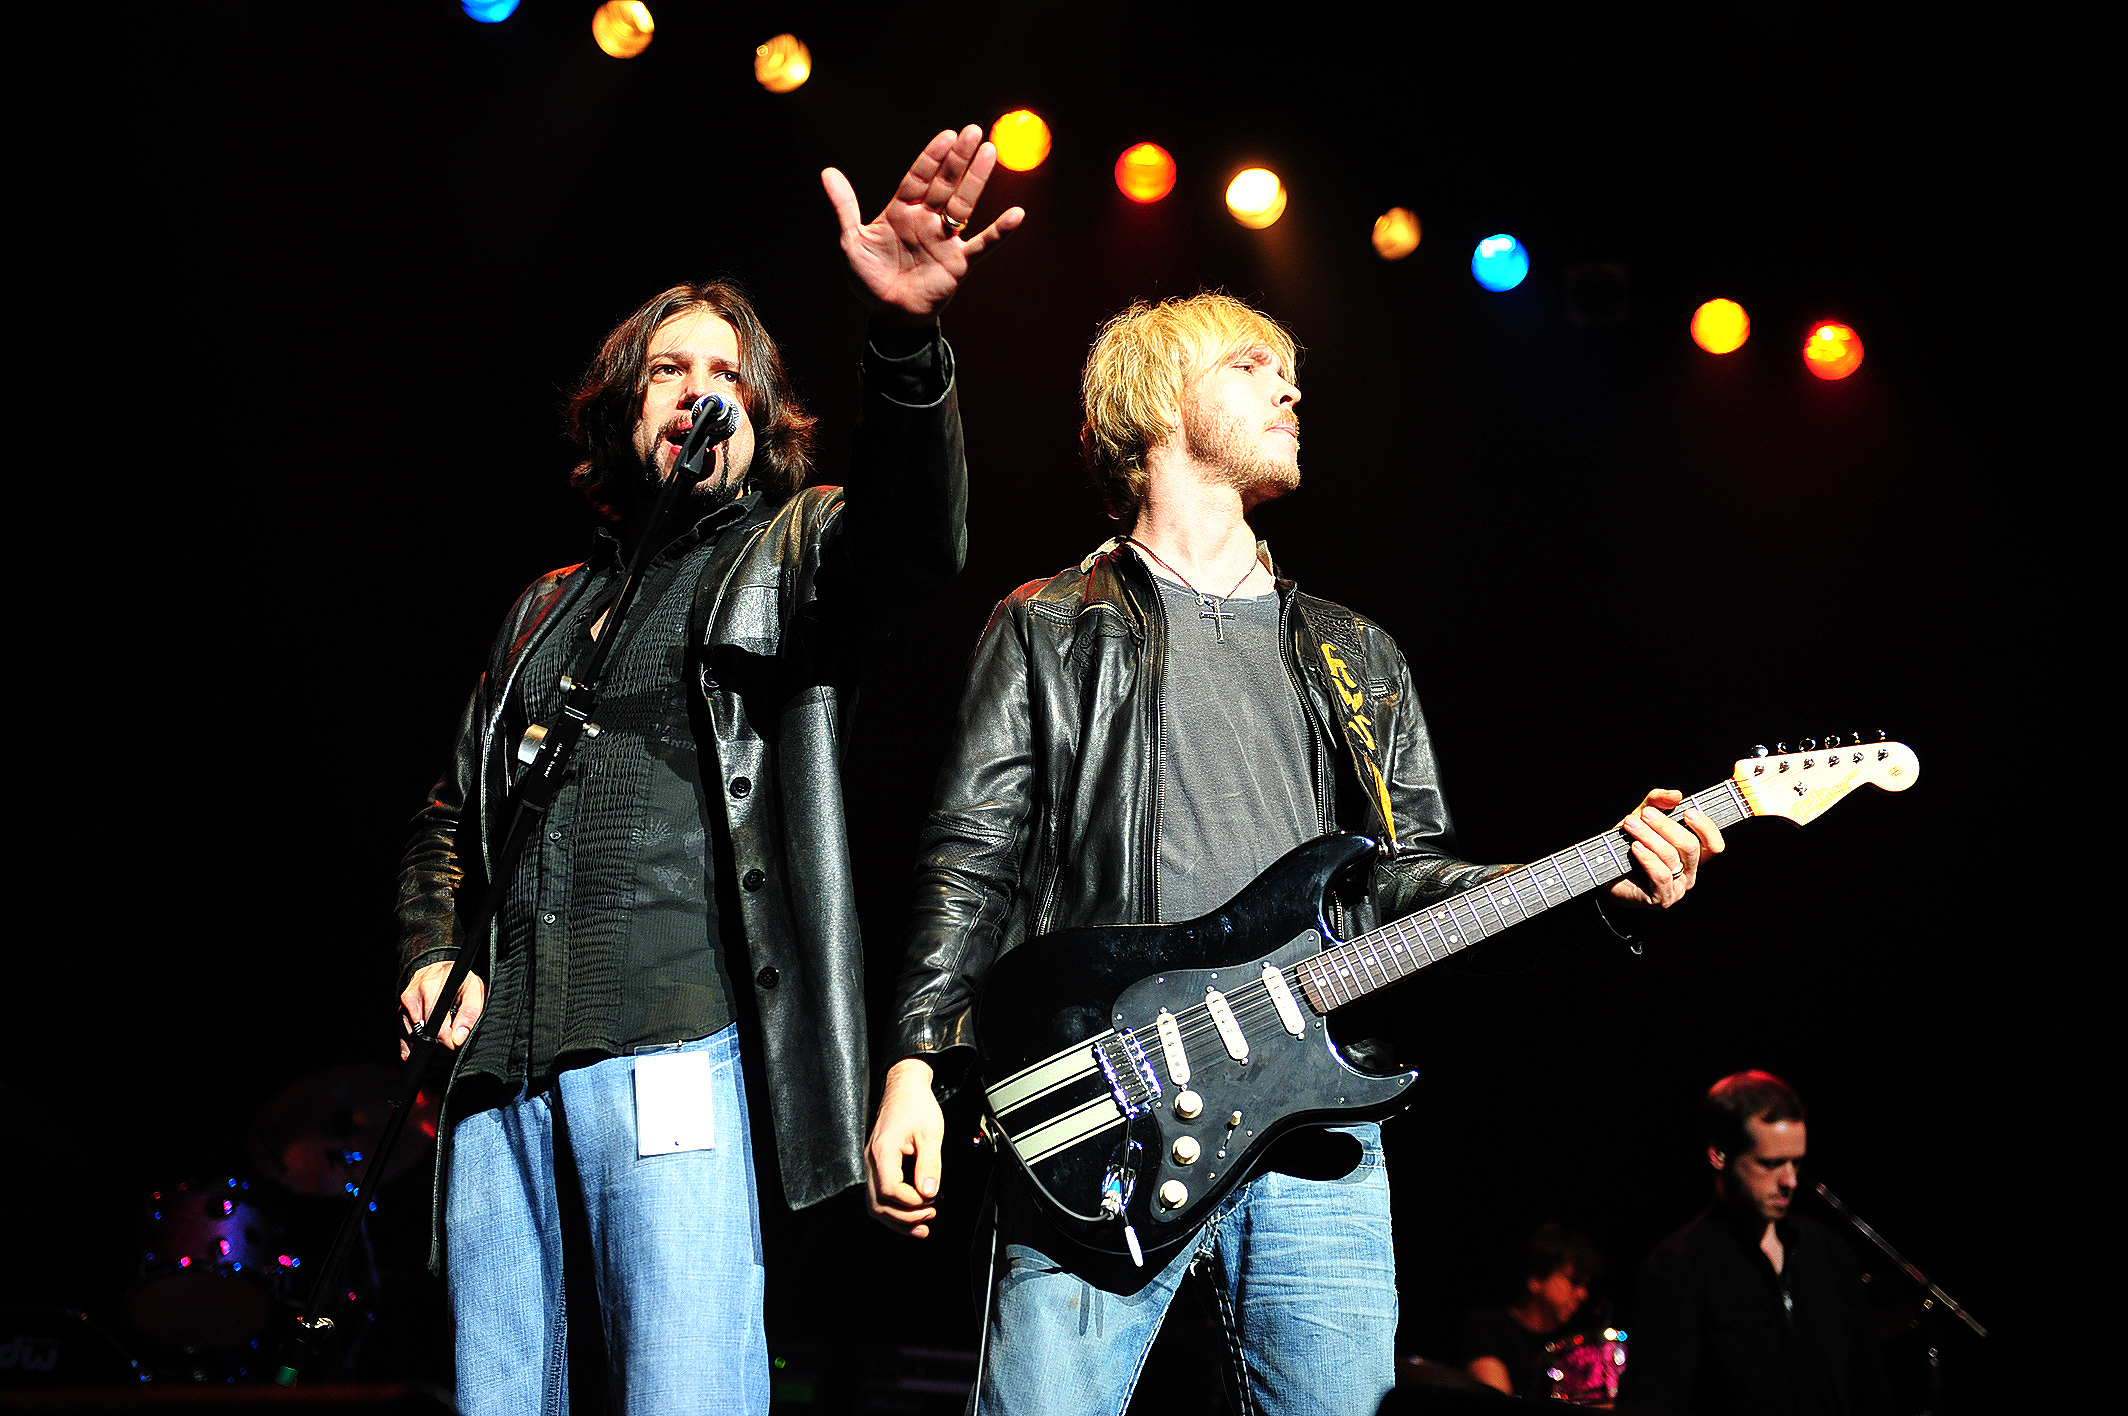 Noah Hunt and Kenny Wayne Shepherd of the Kenny Wayne Shepherd band are photographed during their performances on the 2008 Experience Hendrix Tribute Tour in Seattle, WA. Photo: Steven C. Pesant